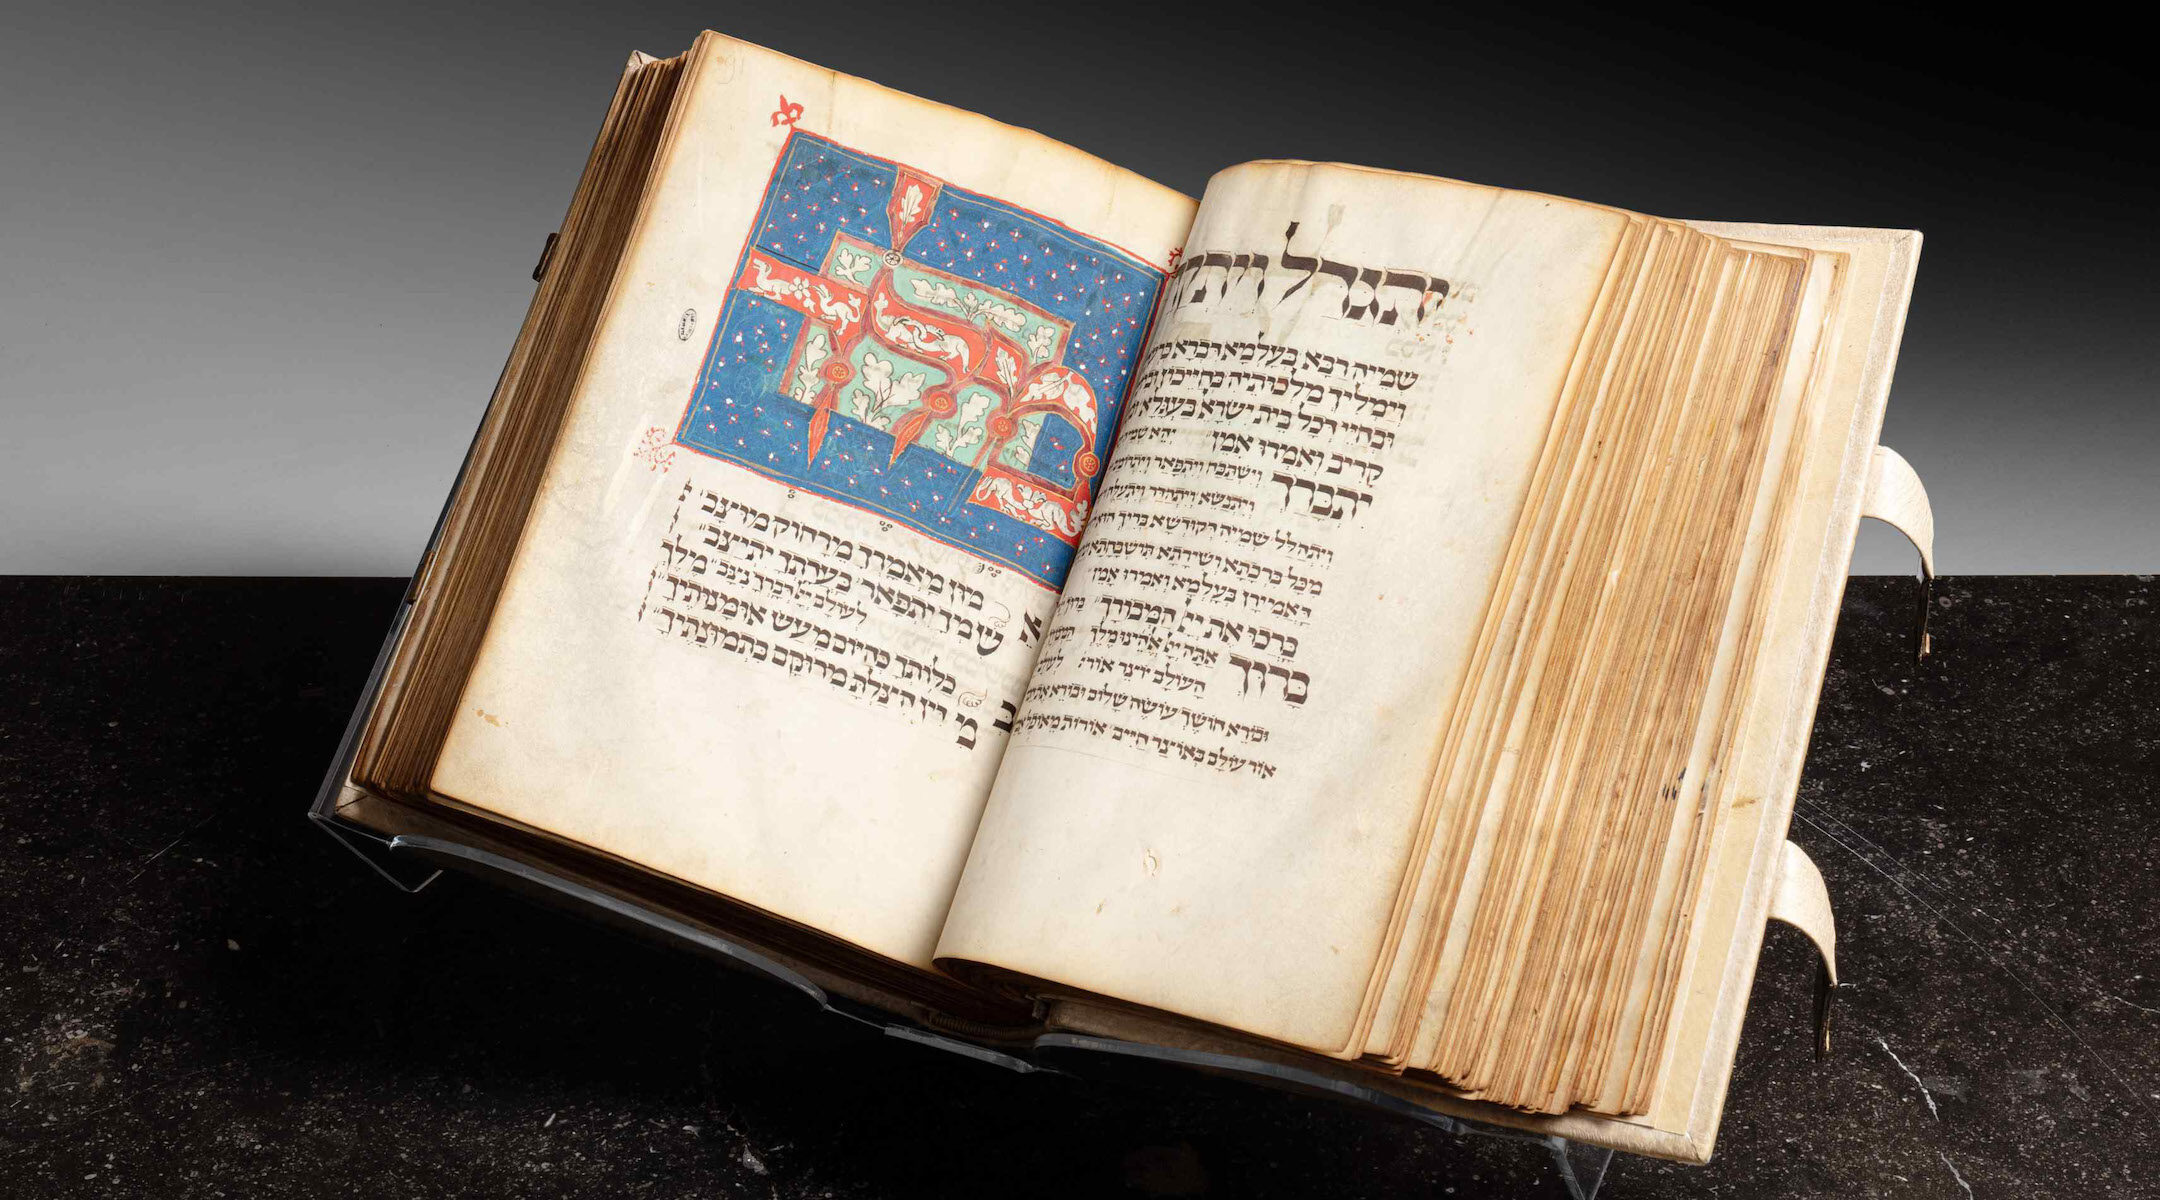 The Luzzatto High Holiday Machzor contains many of the same prayers that Jews recite today, including the Kaddish. (Photo/JTA-Courtesy of Sotheby's)